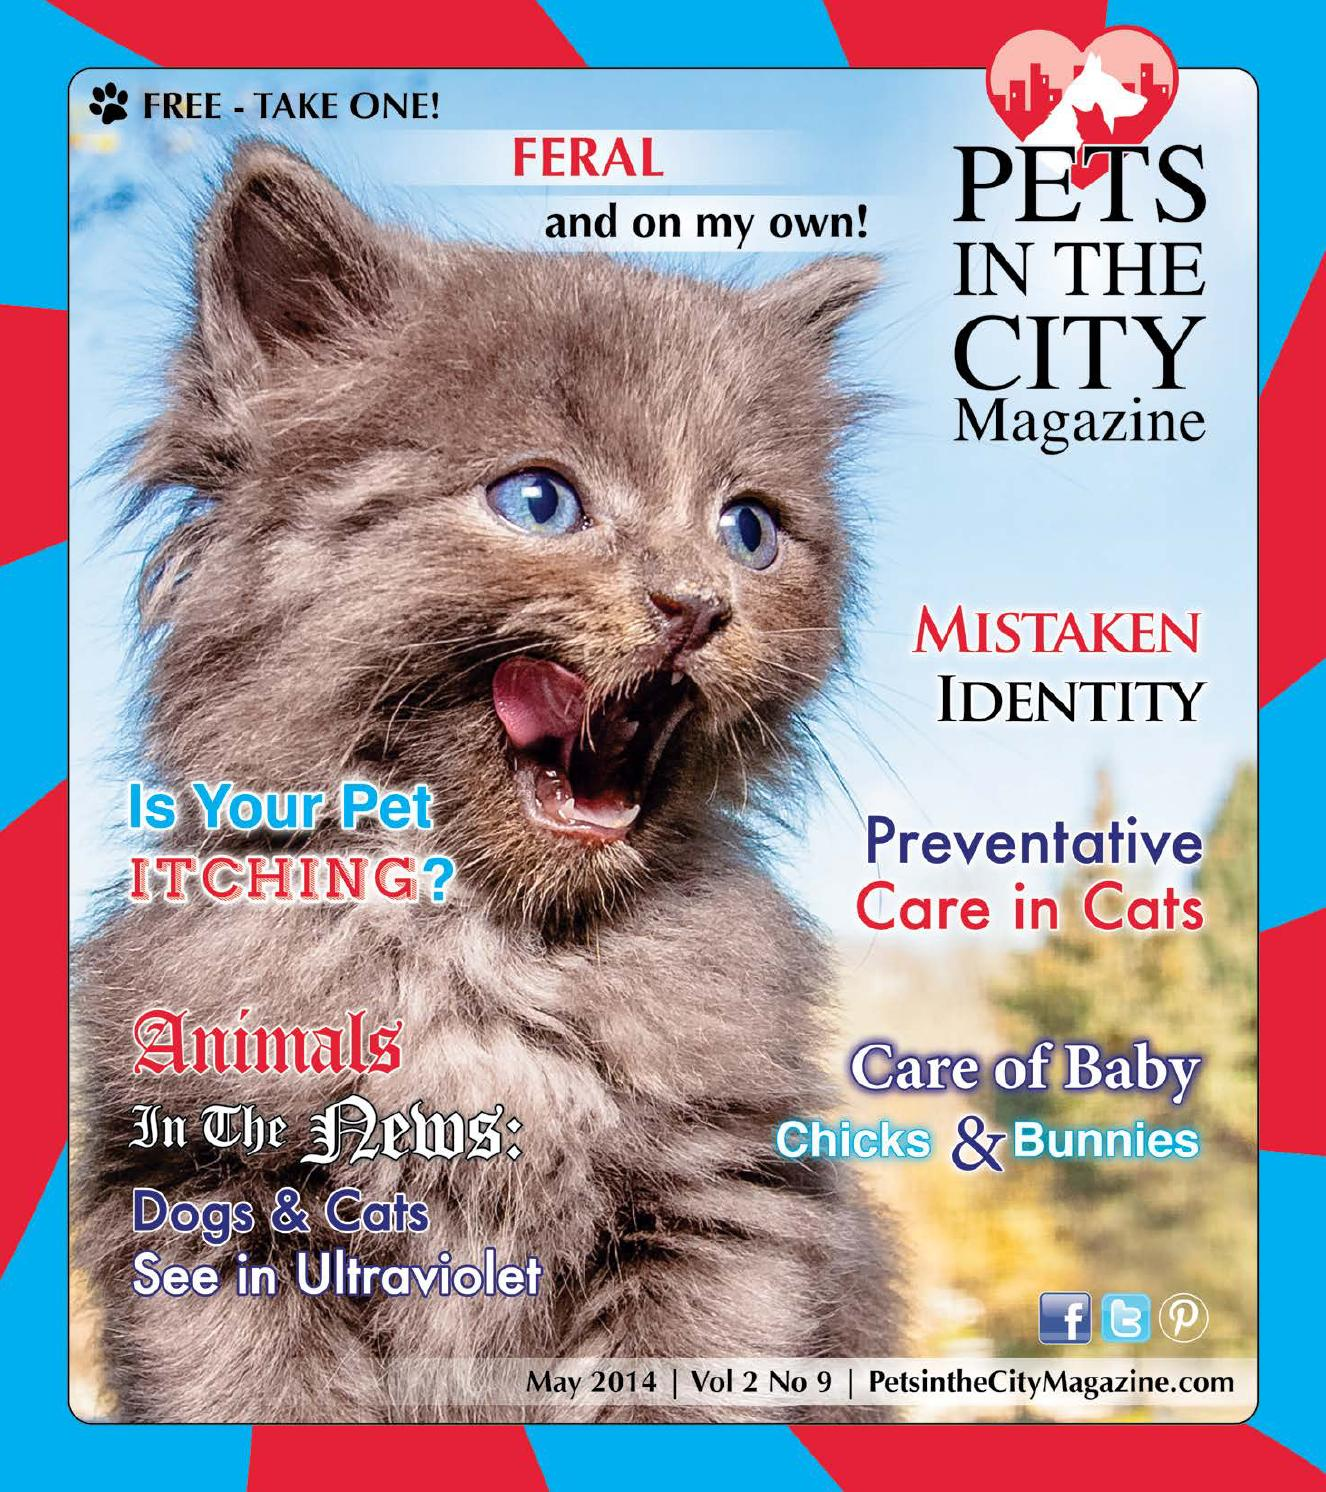 b363dd2553cd Pets in the City Magazine May 2014 Issue by Pets in the City Magazine -  issuu